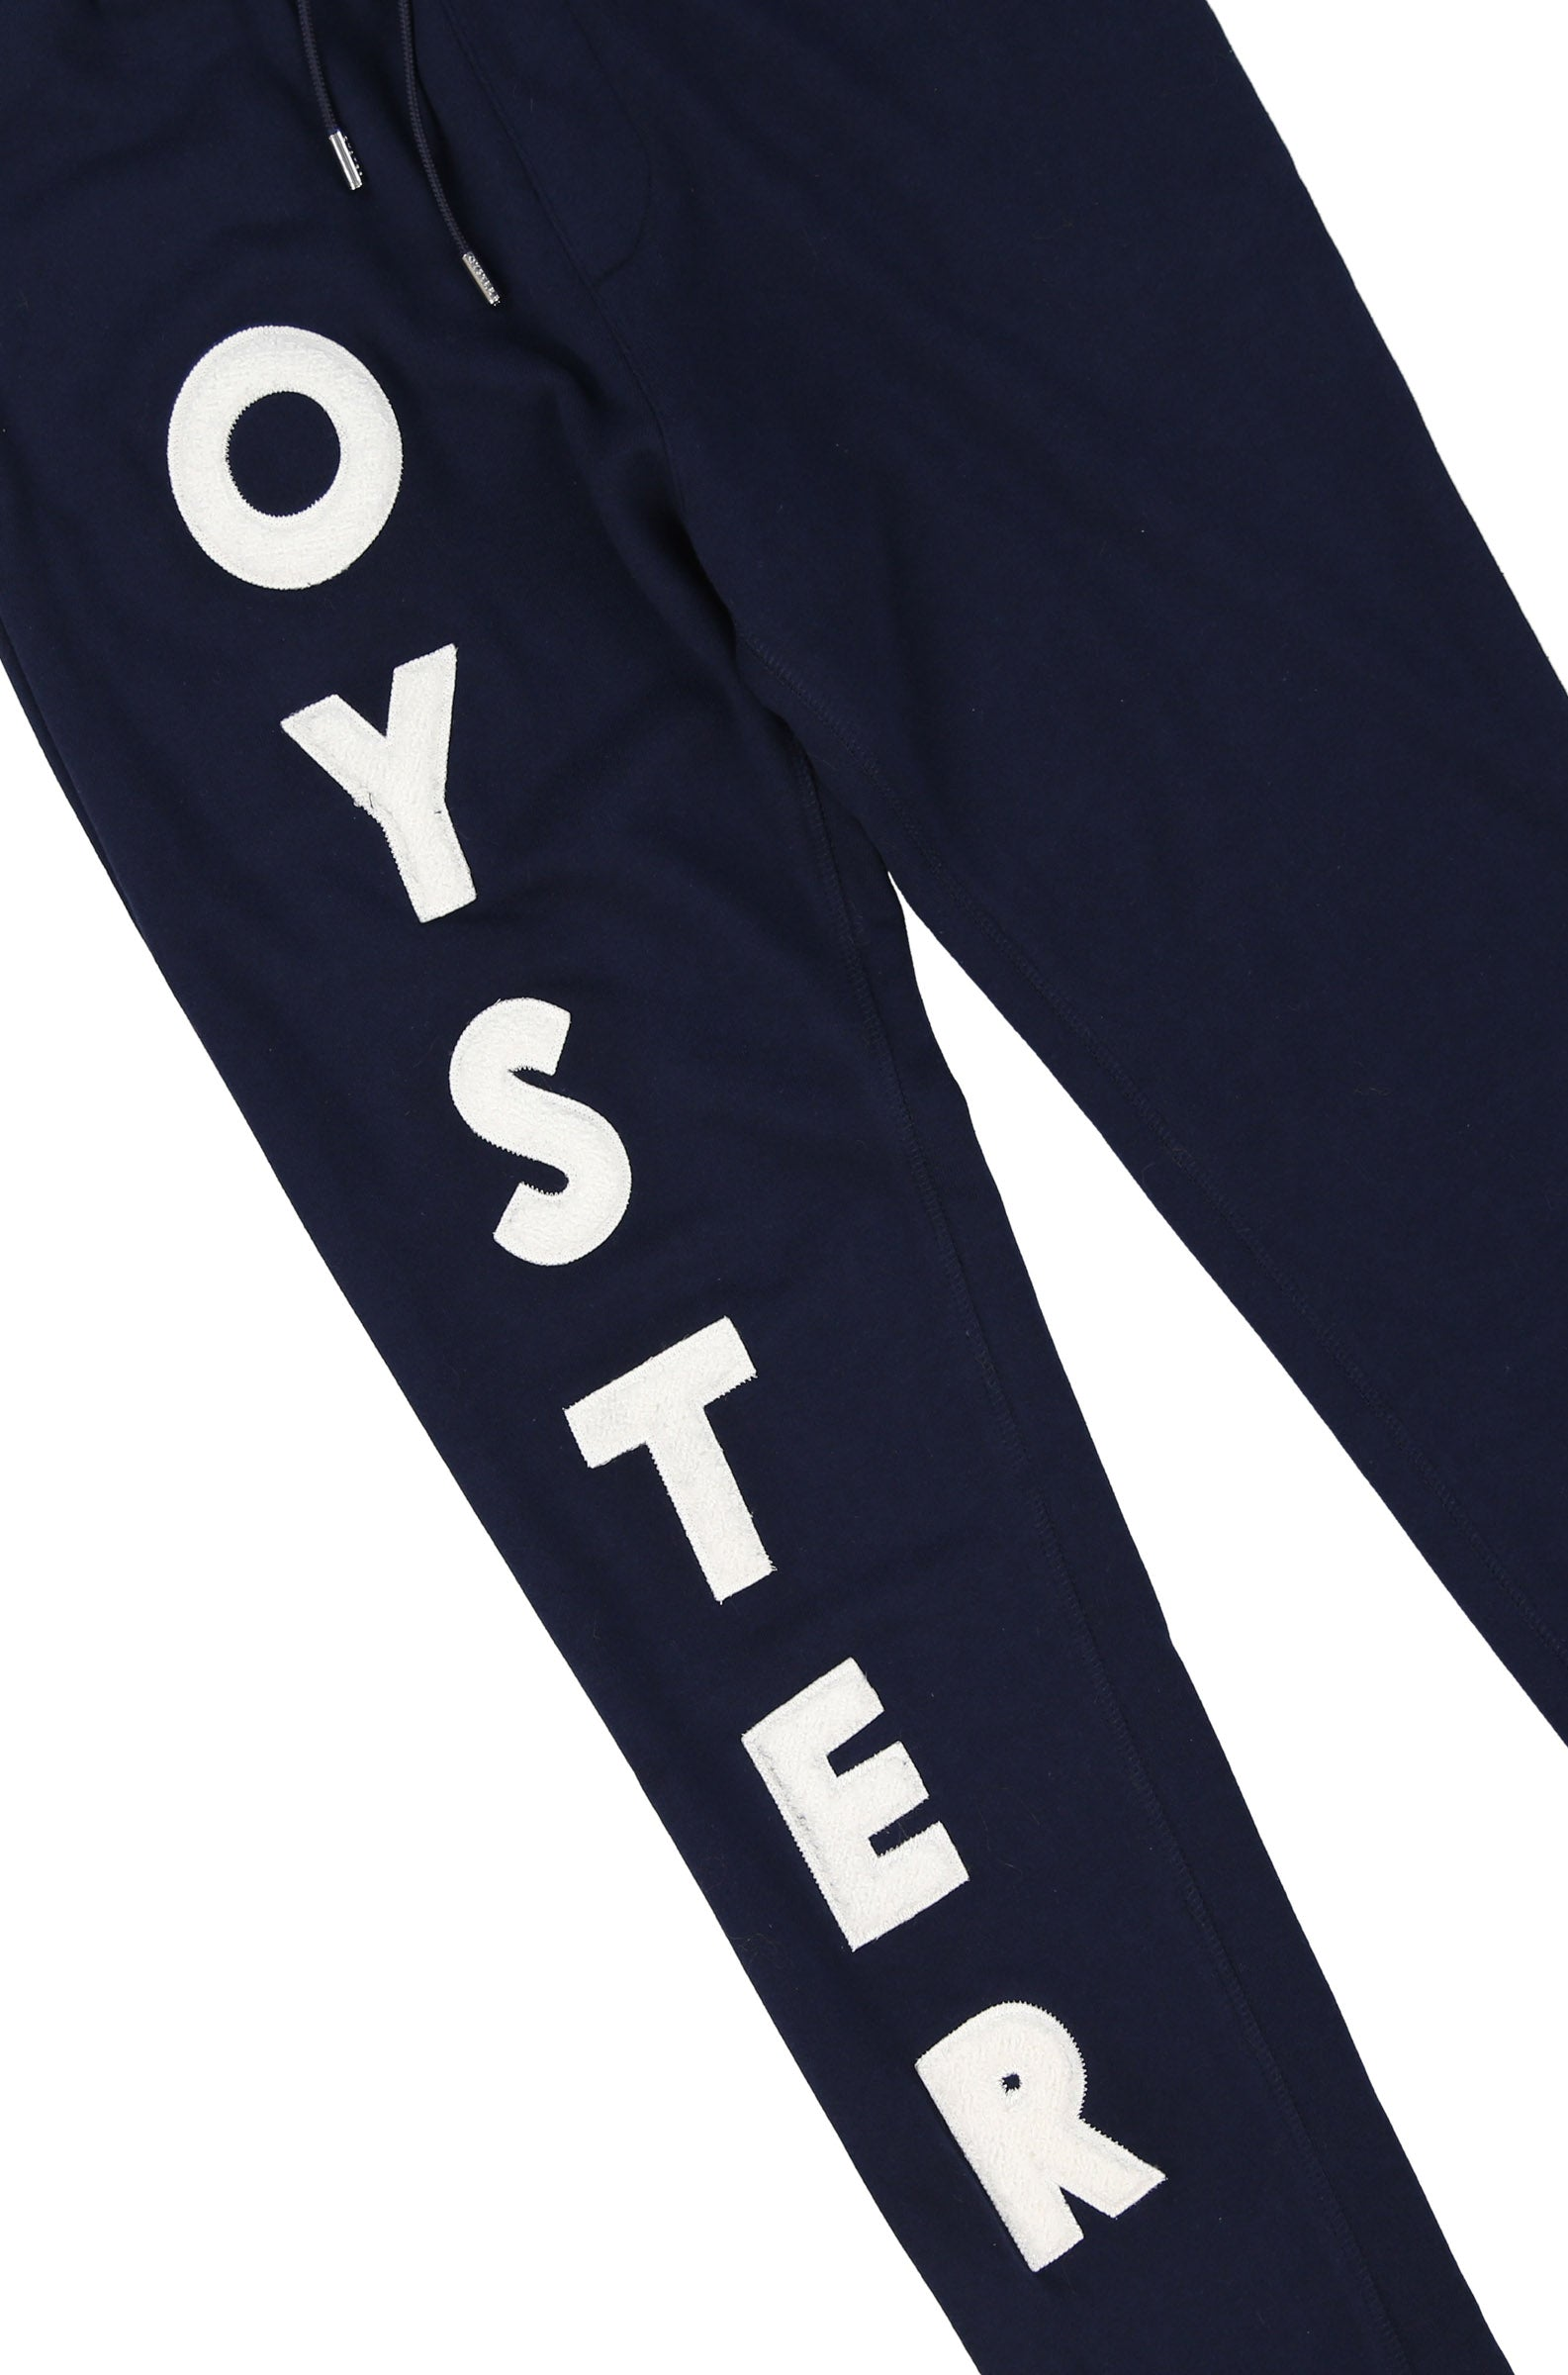 Oyster logo chenille sweatpants (Navy)